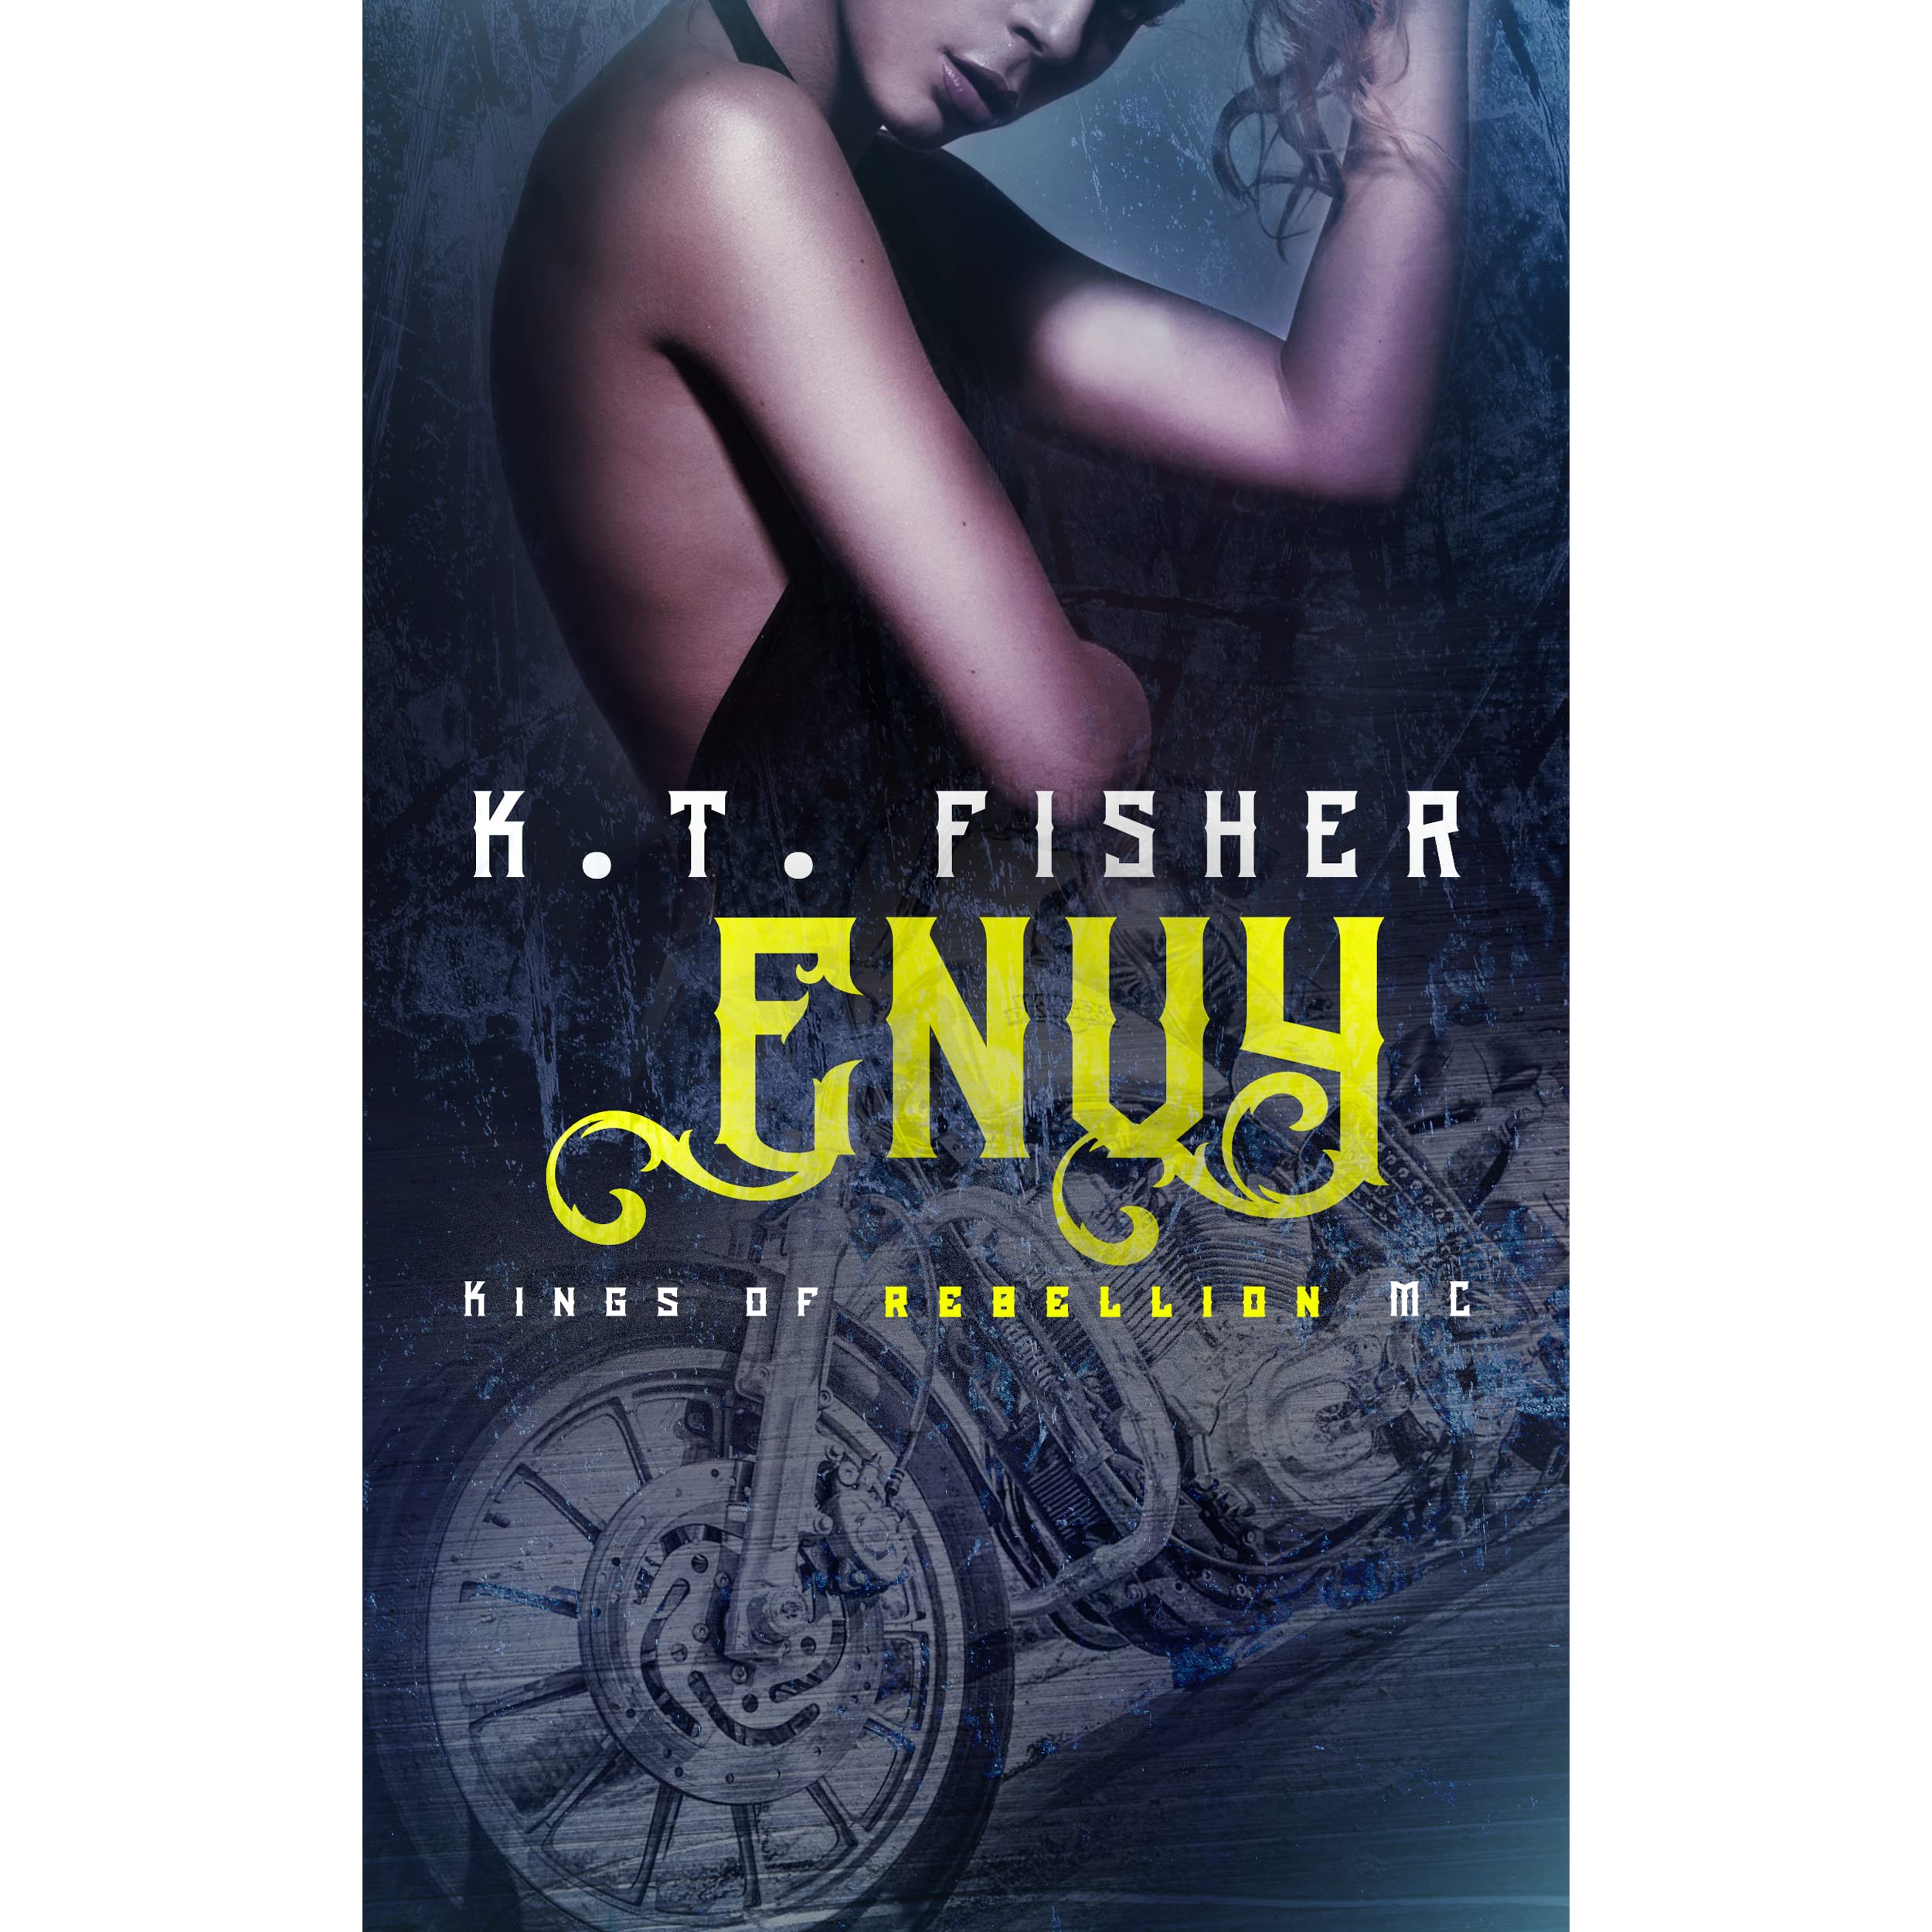 A good introduction to an essay on envy?